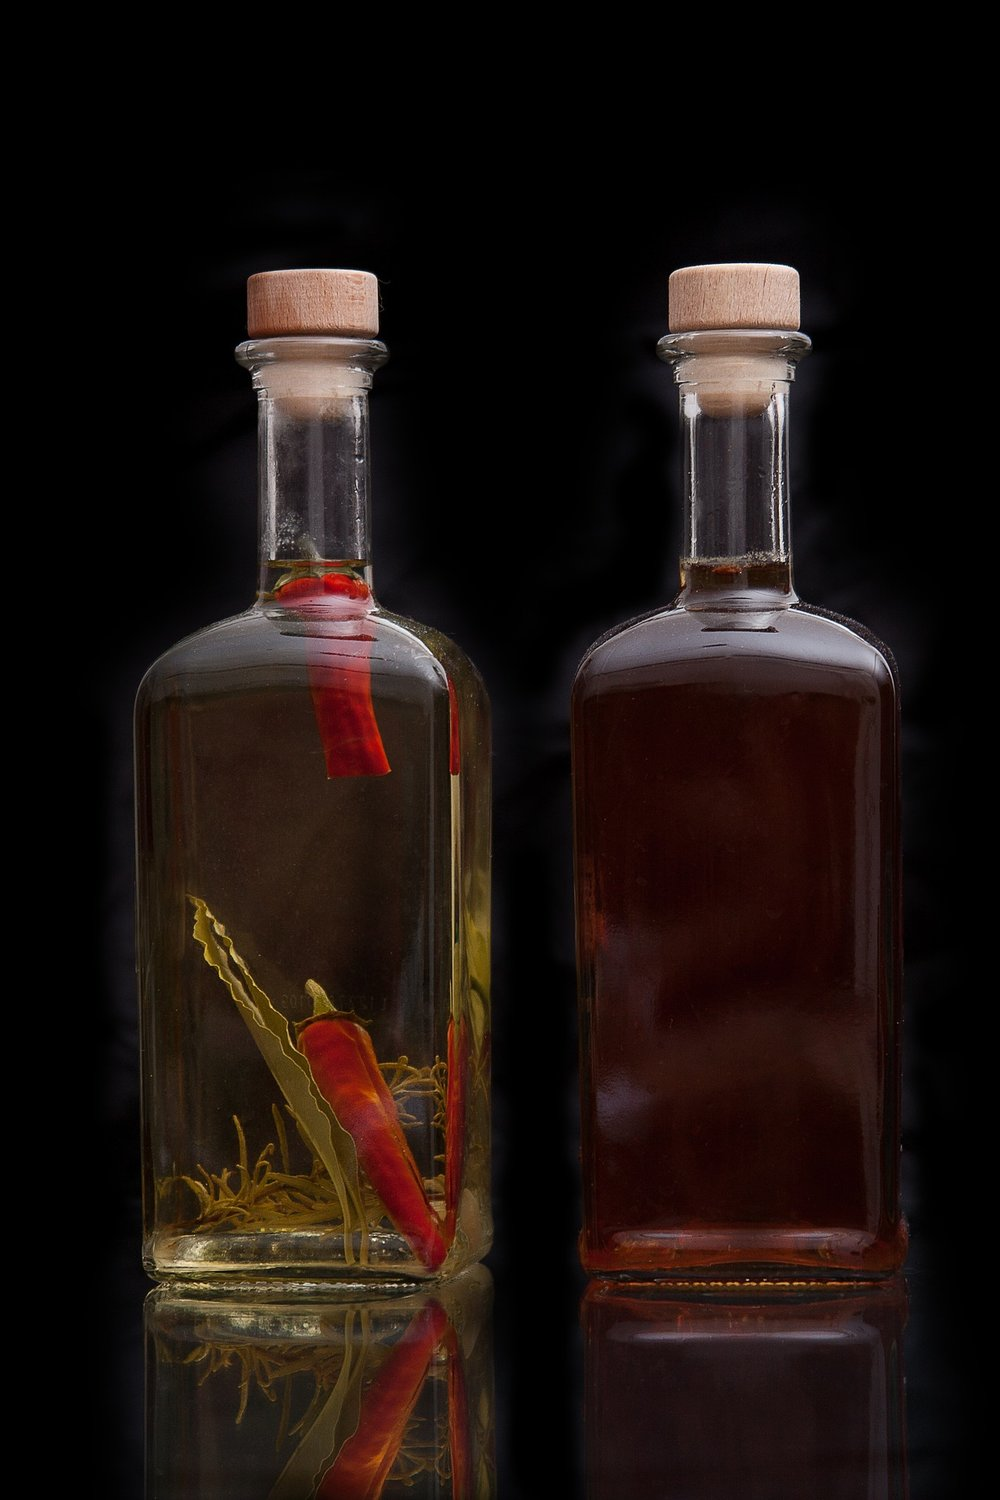 Learn More About Oil & Vinegar Here